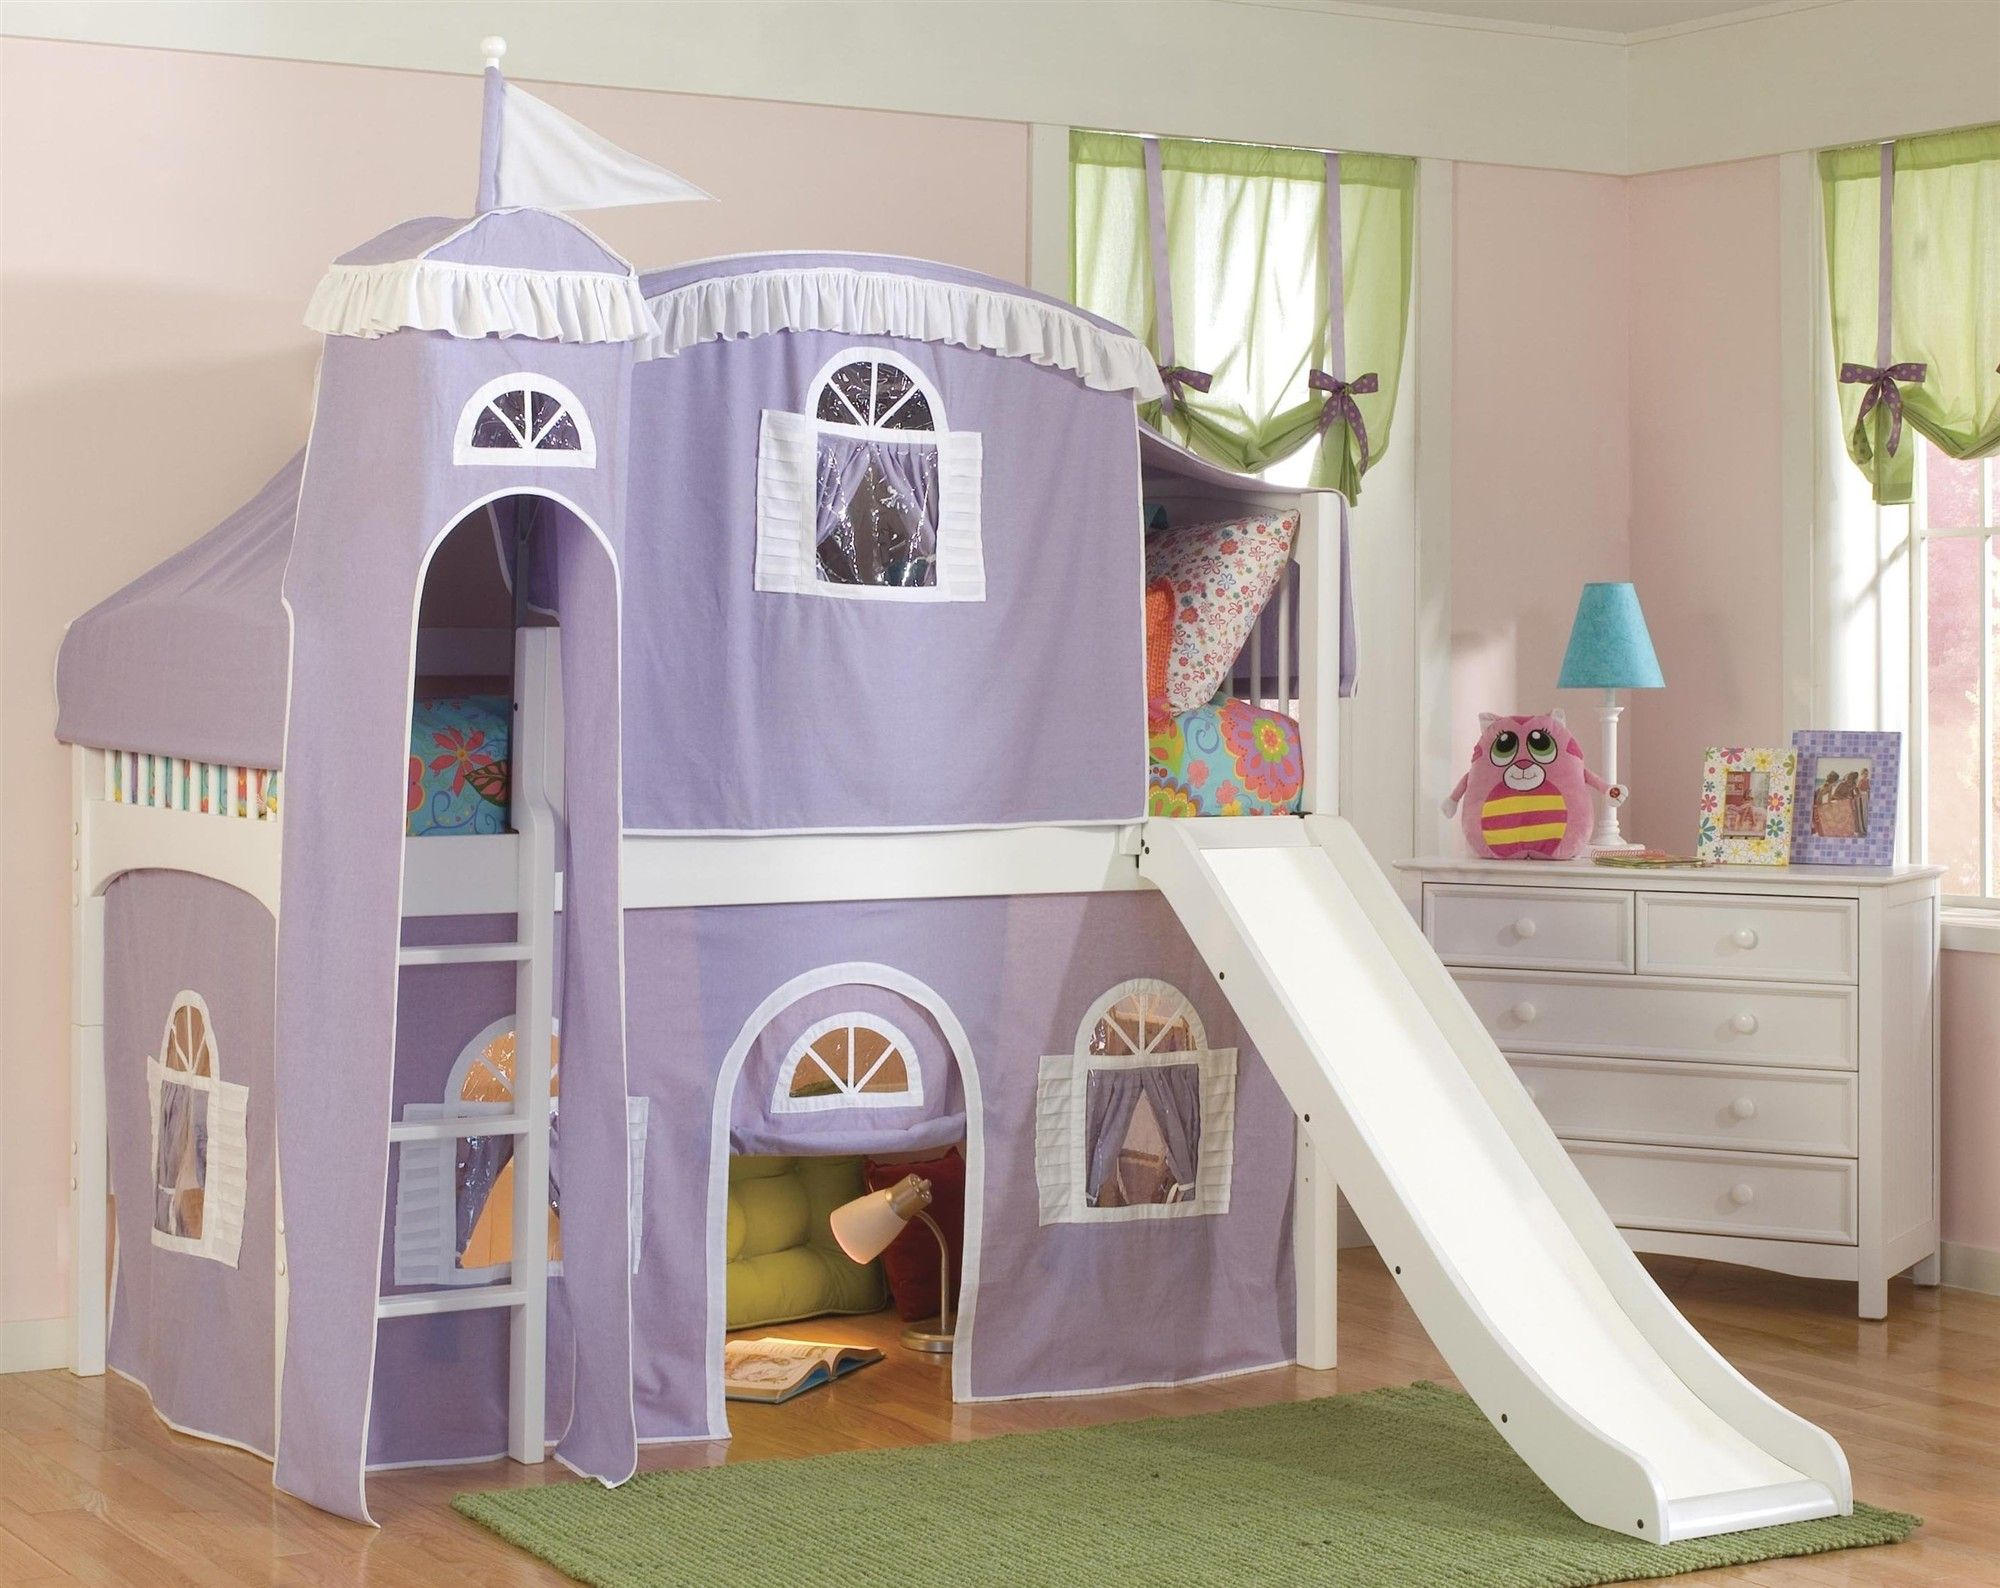 Lovely Purple Castle Tent Bunk Bed Curtains With White Stairs . : beds with slides and tents - memphite.com